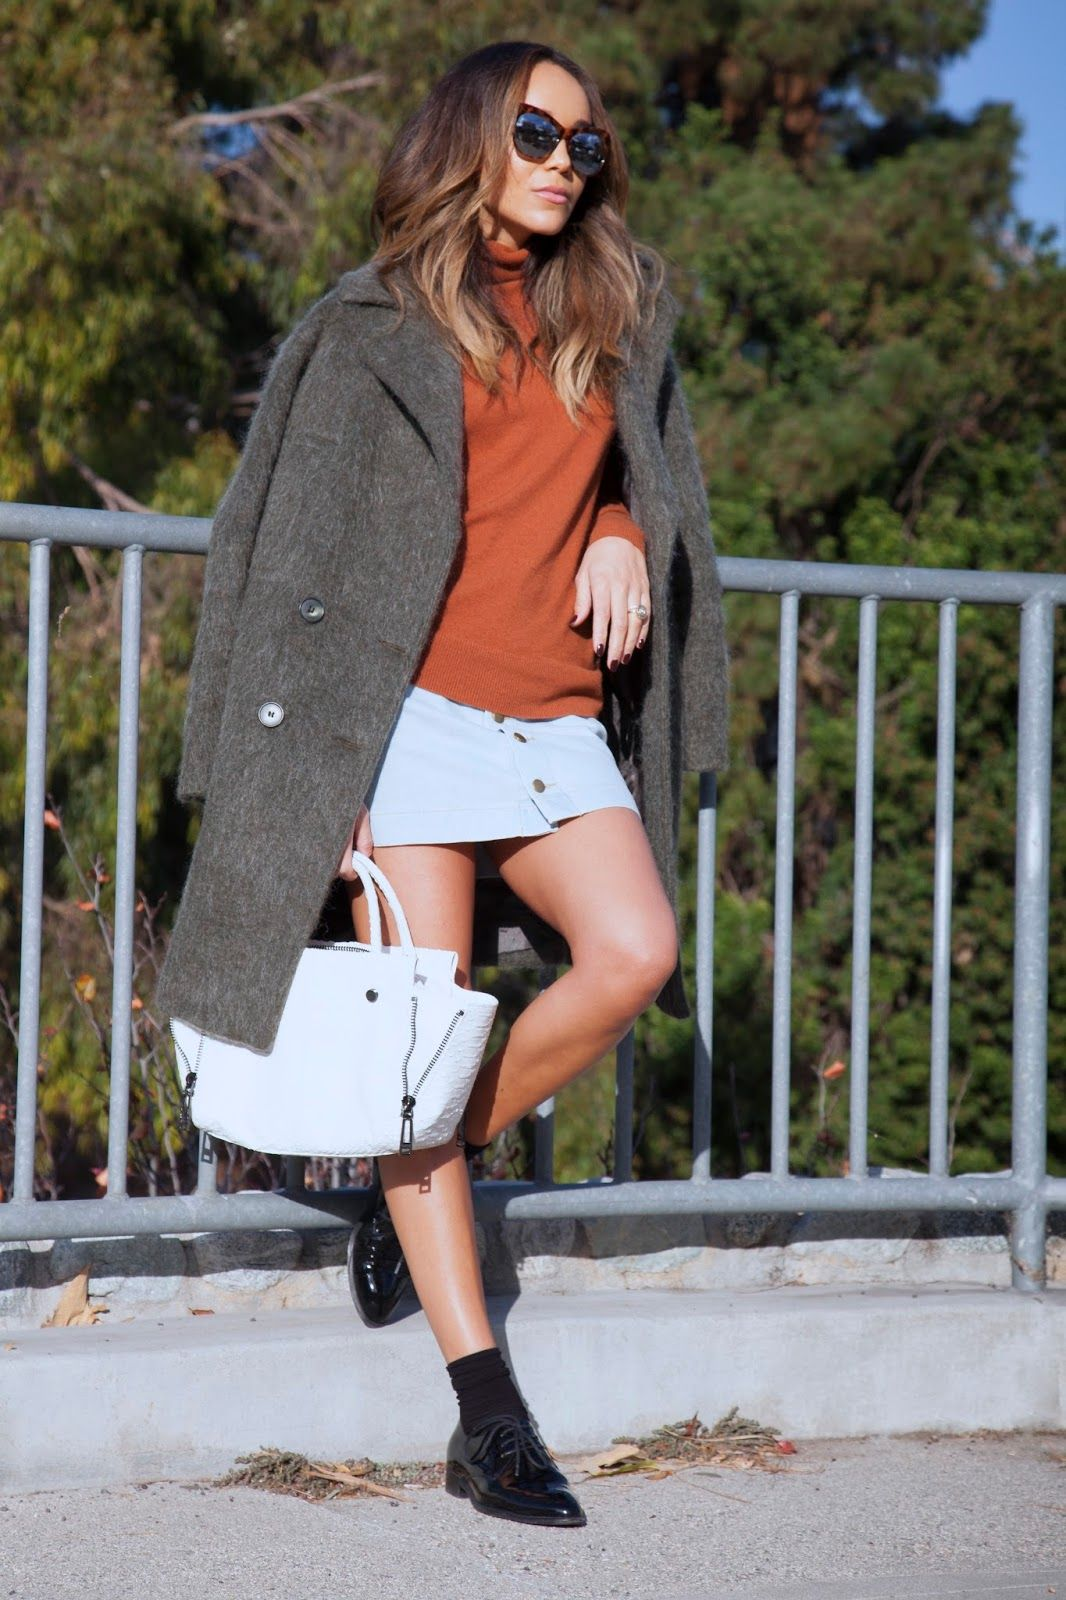 Sweater: ASOS. Skirt: American Apparel. Shoes: Celine. Coat: ASOS. Bag: Botkier. Sunglasses: Elizabeth & James.